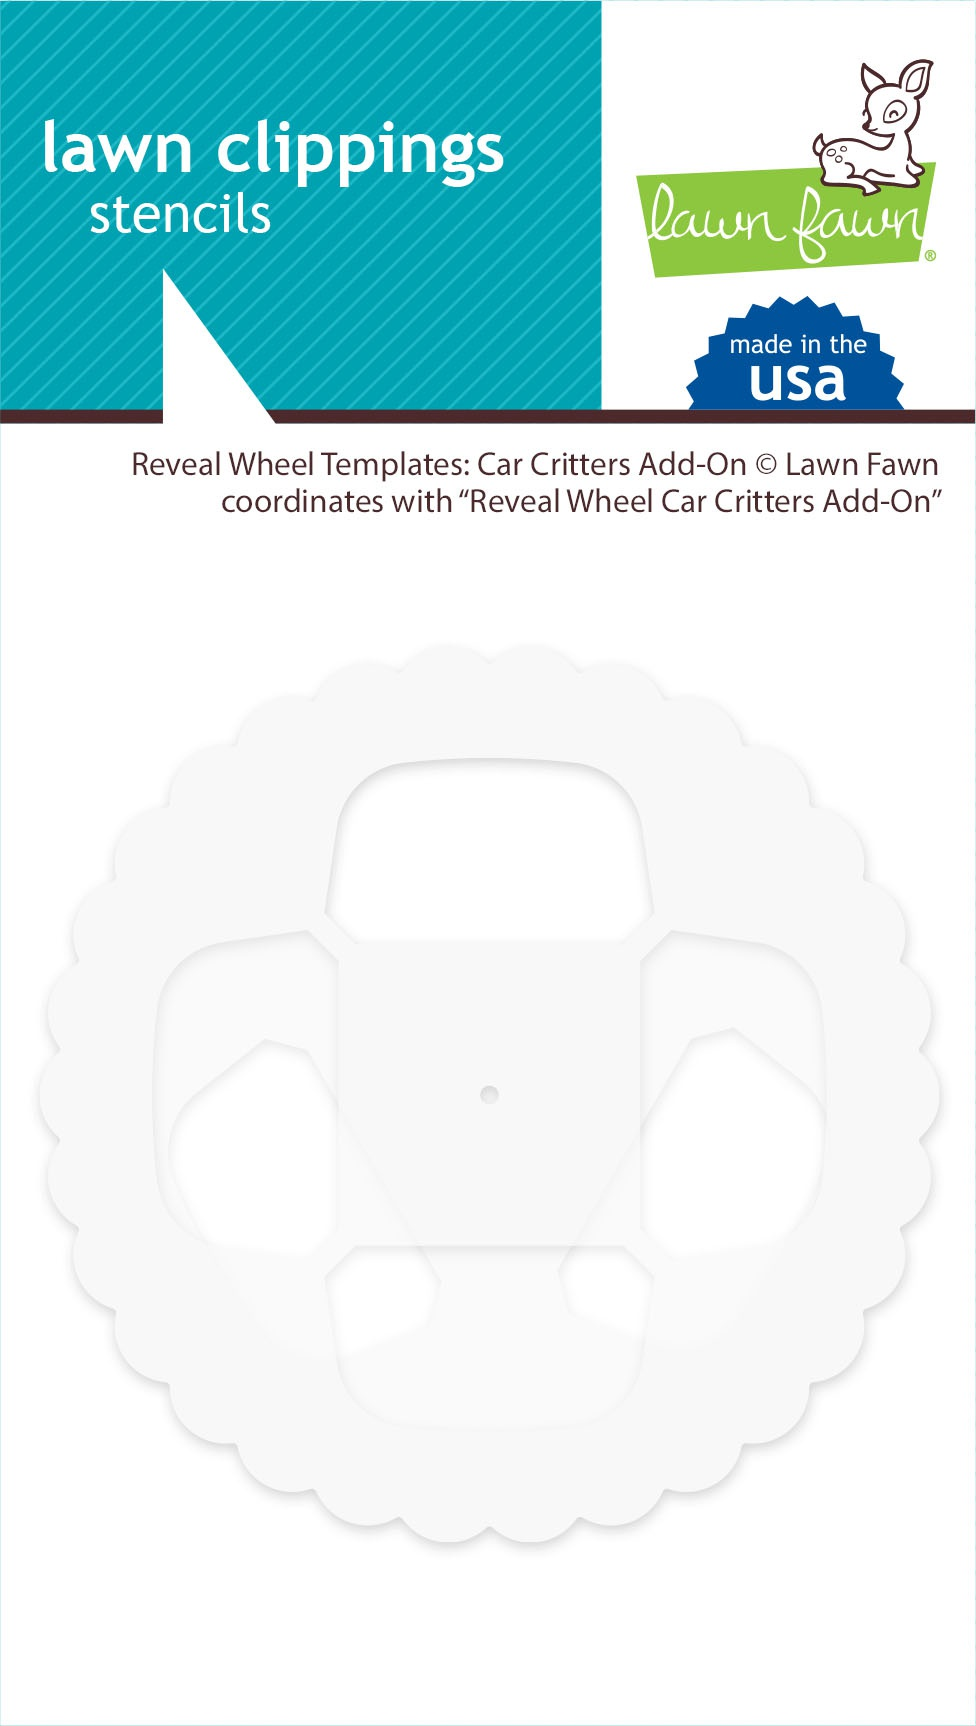 RW Templates - Car Critters